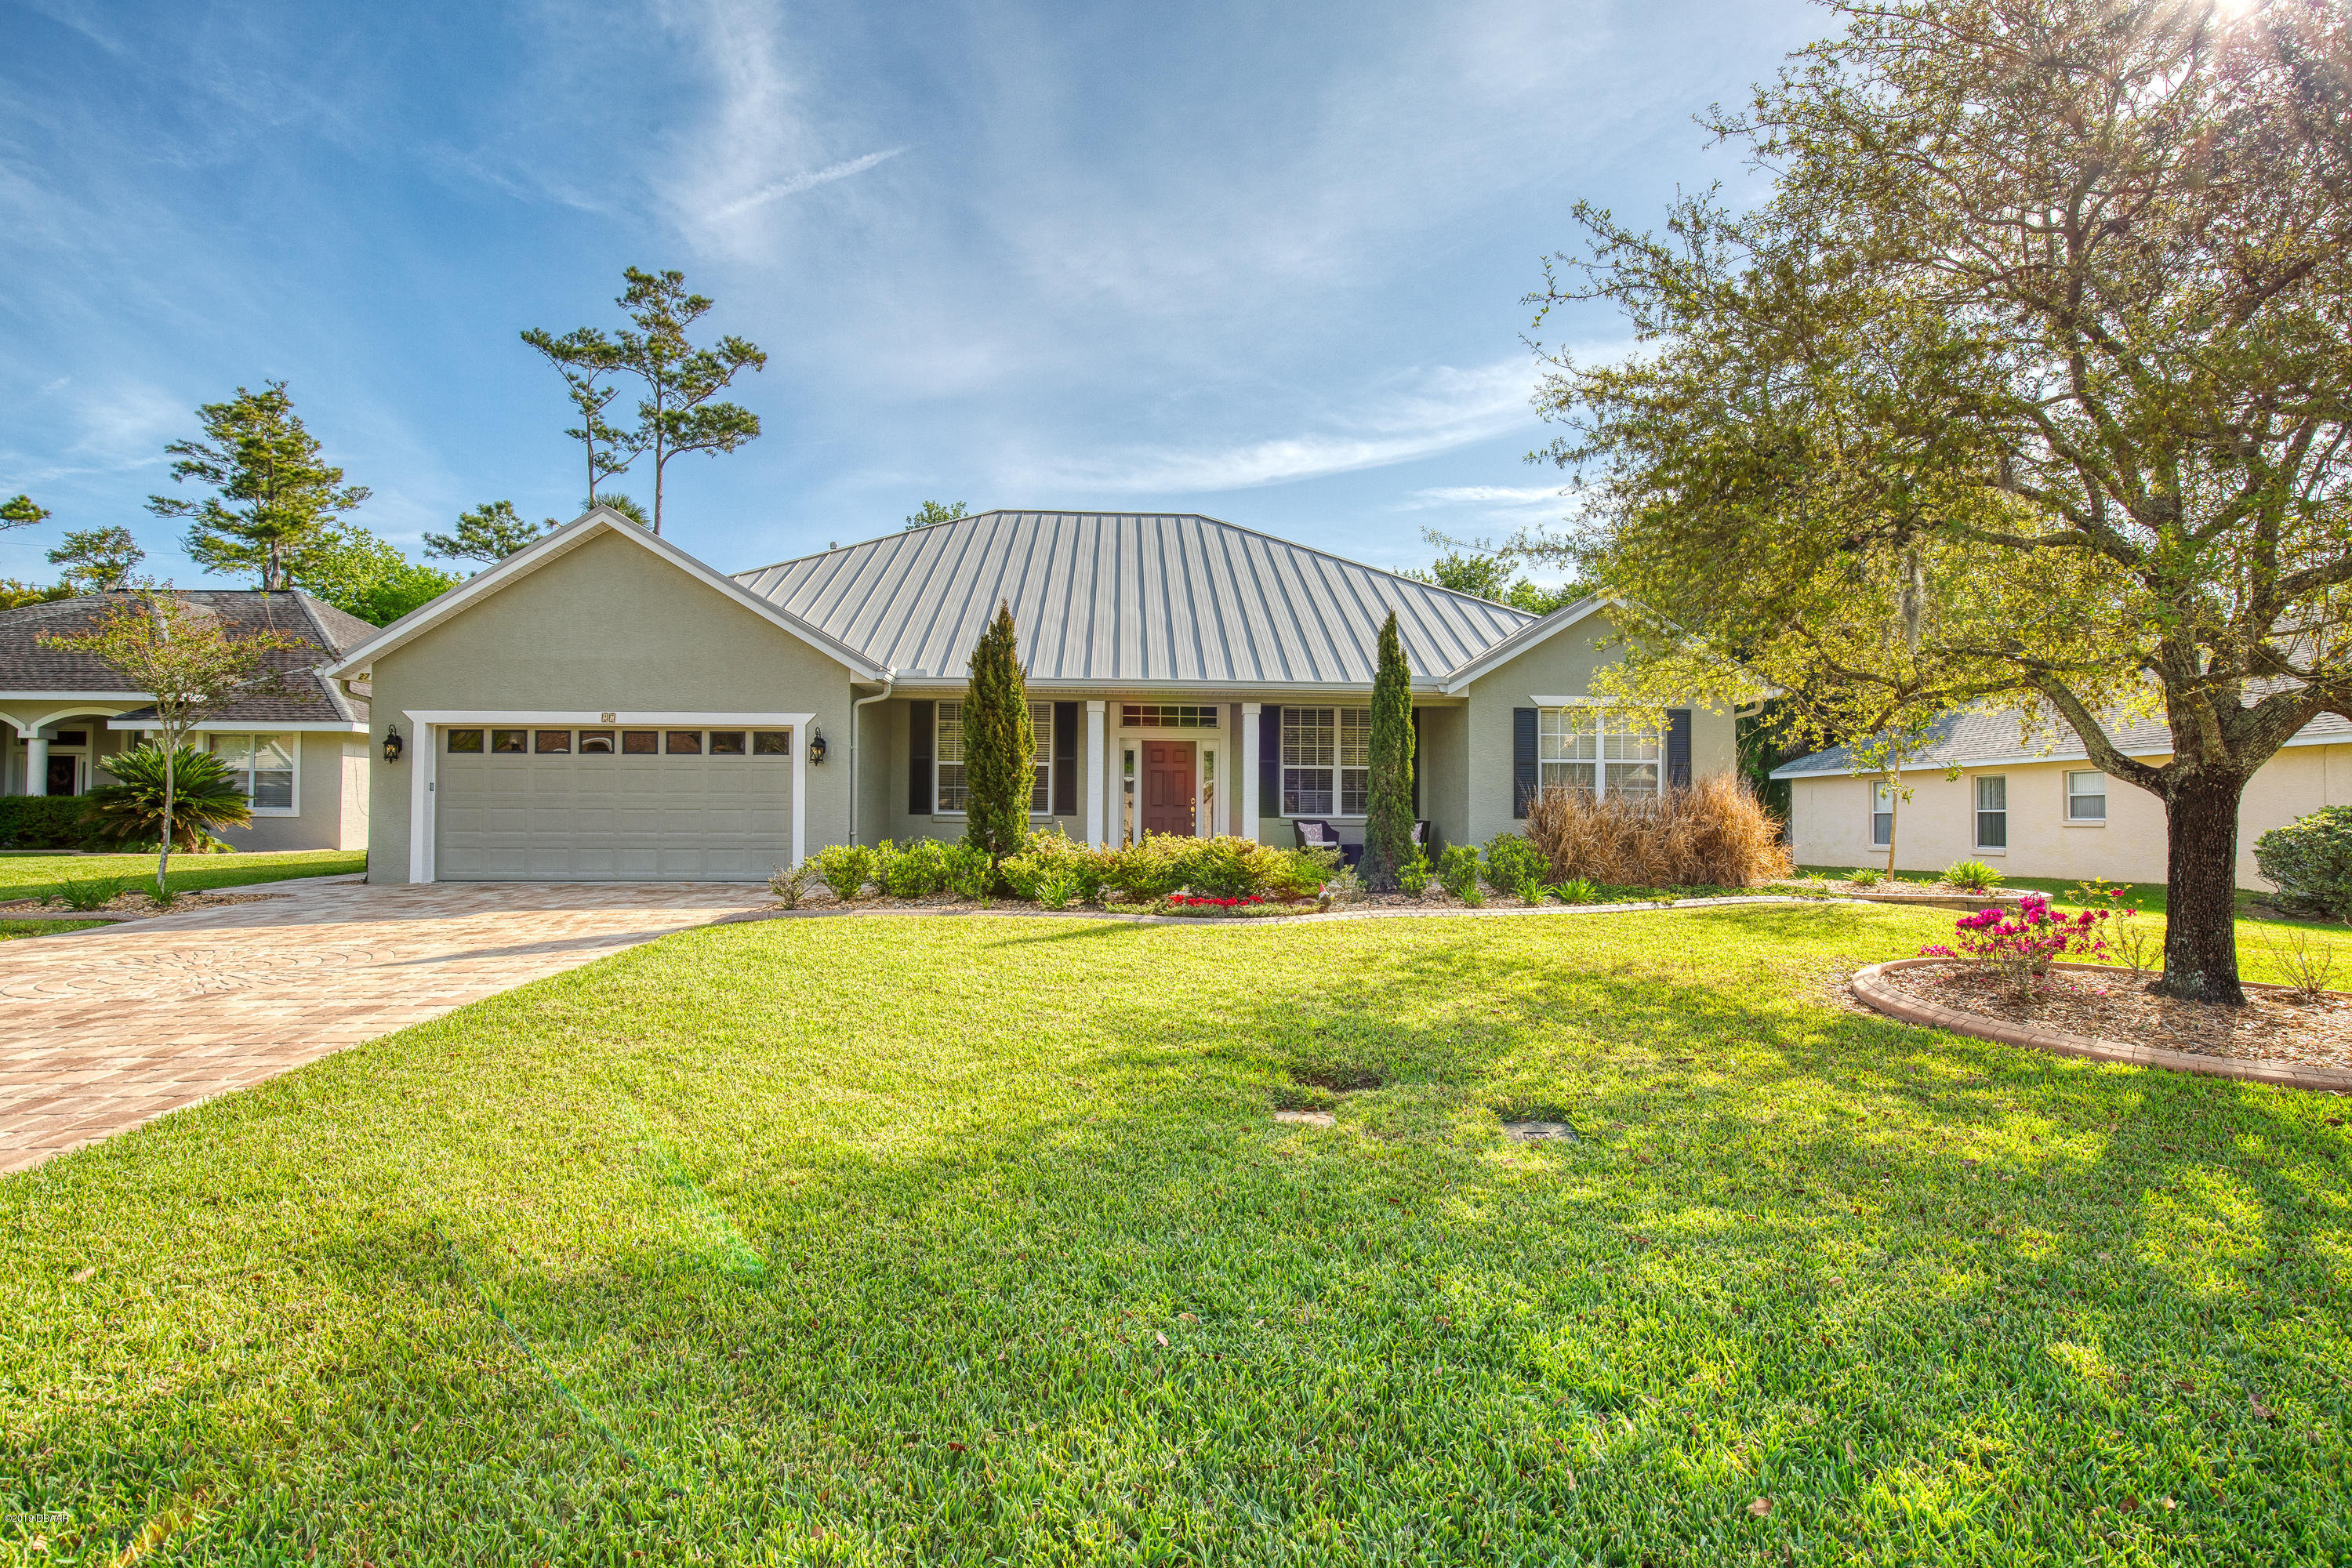 27  Manderley Lane, Ormond Beach in Volusia County, FL 32174 Home for Sale